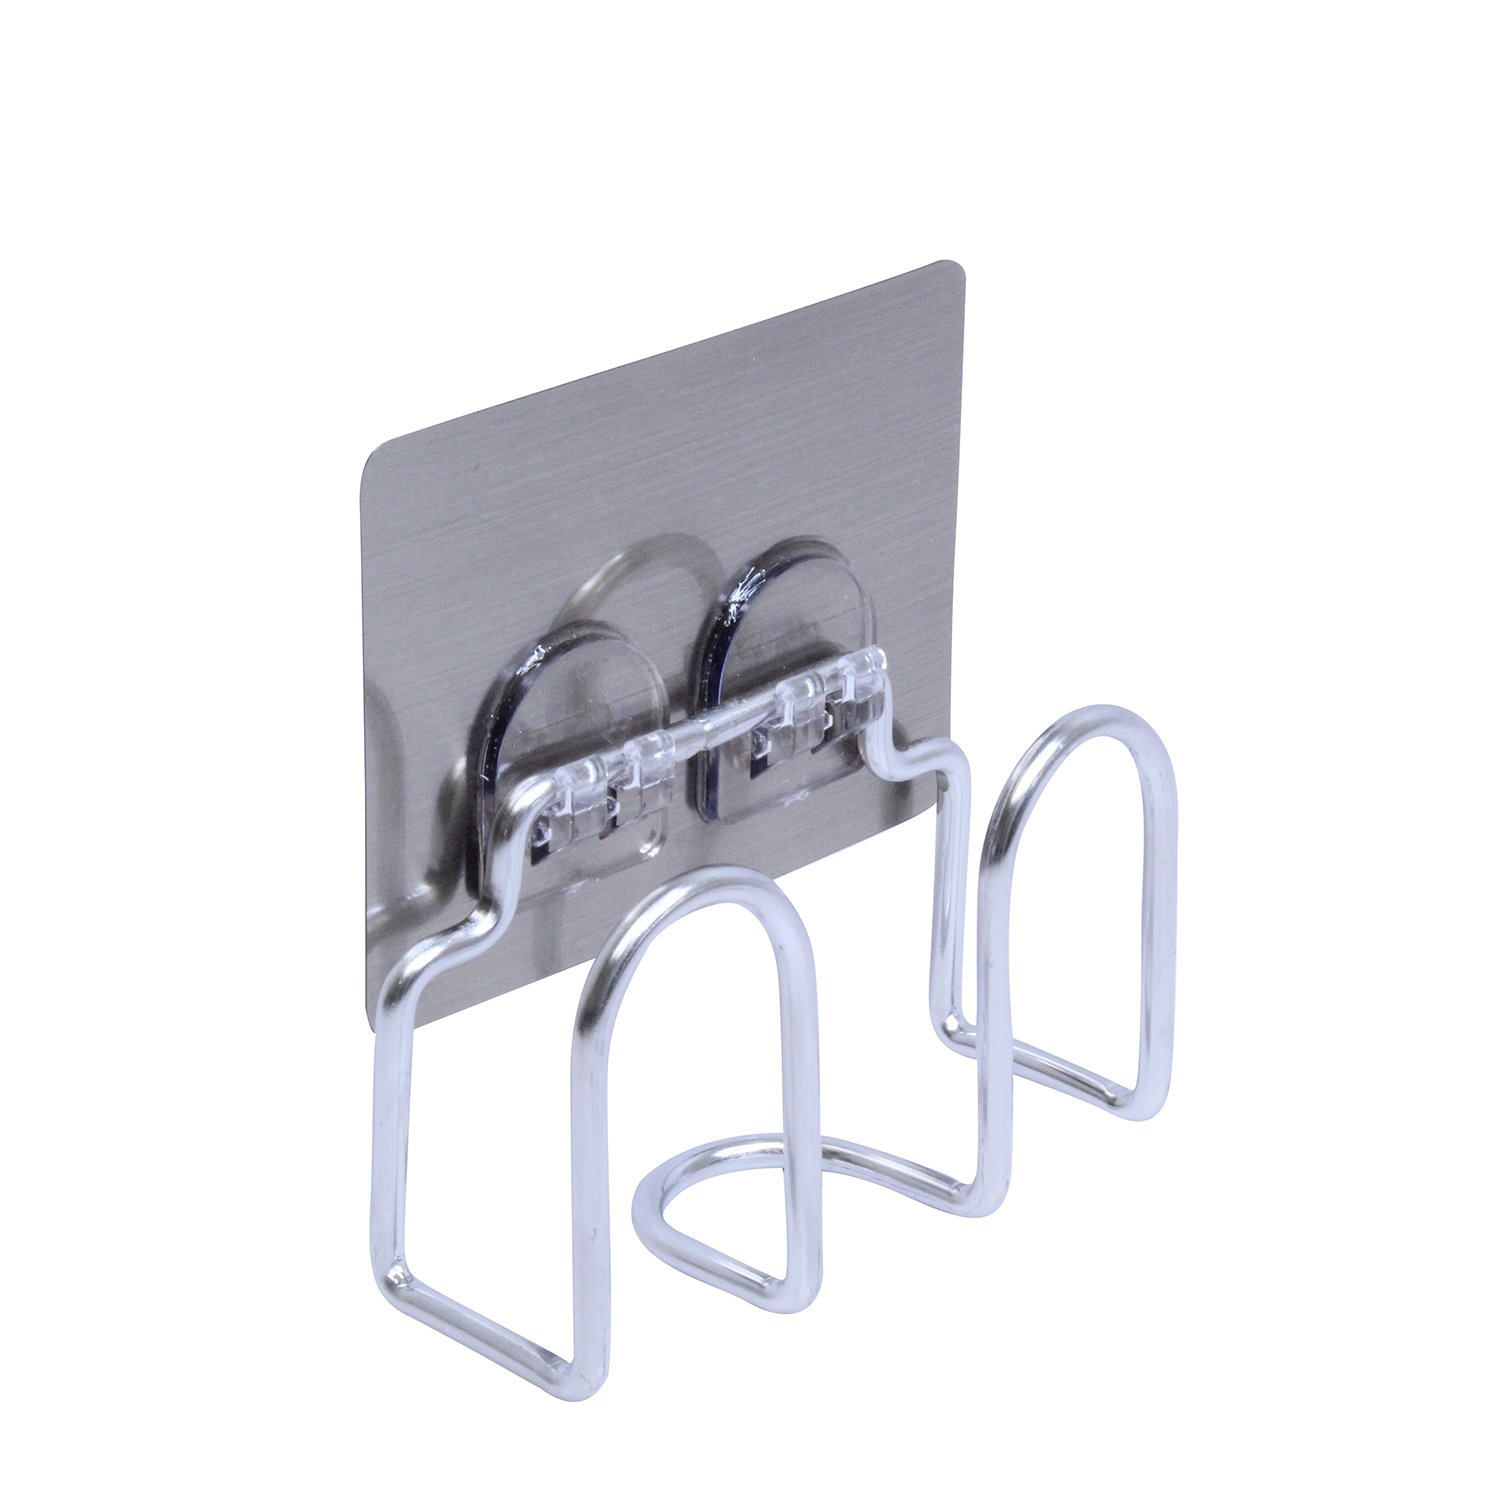 Removable Metal Wall Organizer Adhesive Soap Sponge Storage Caddy Kitchen Storage Rack Drainer Hanging Stainless Steel Bathroom Soap Container